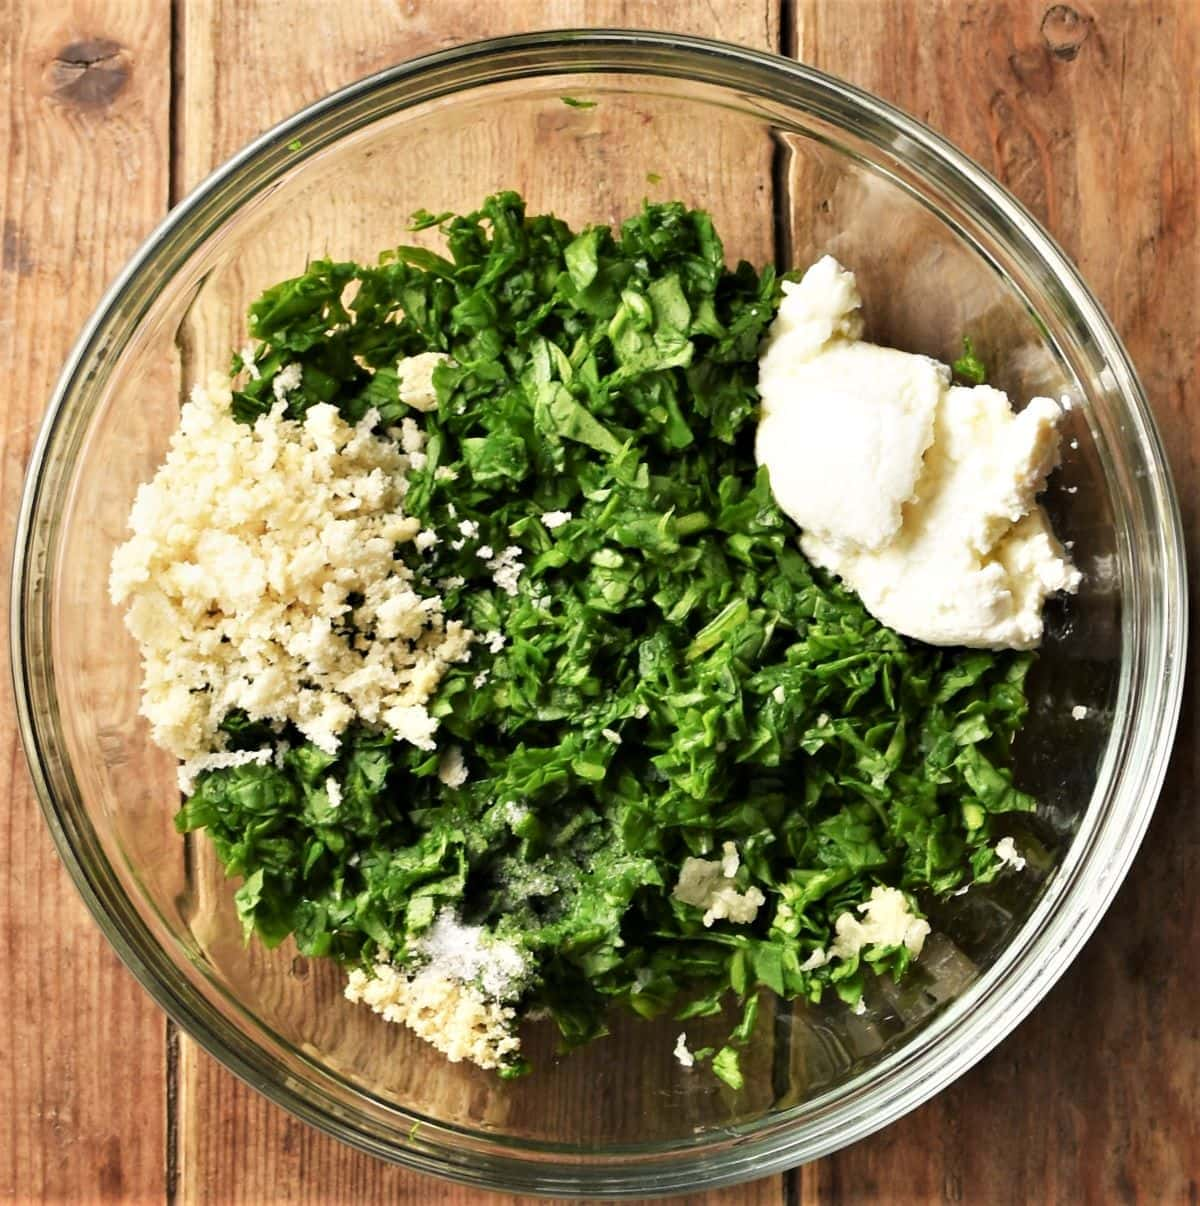 Spinach mixture with cheese and panko in mixing bowl.